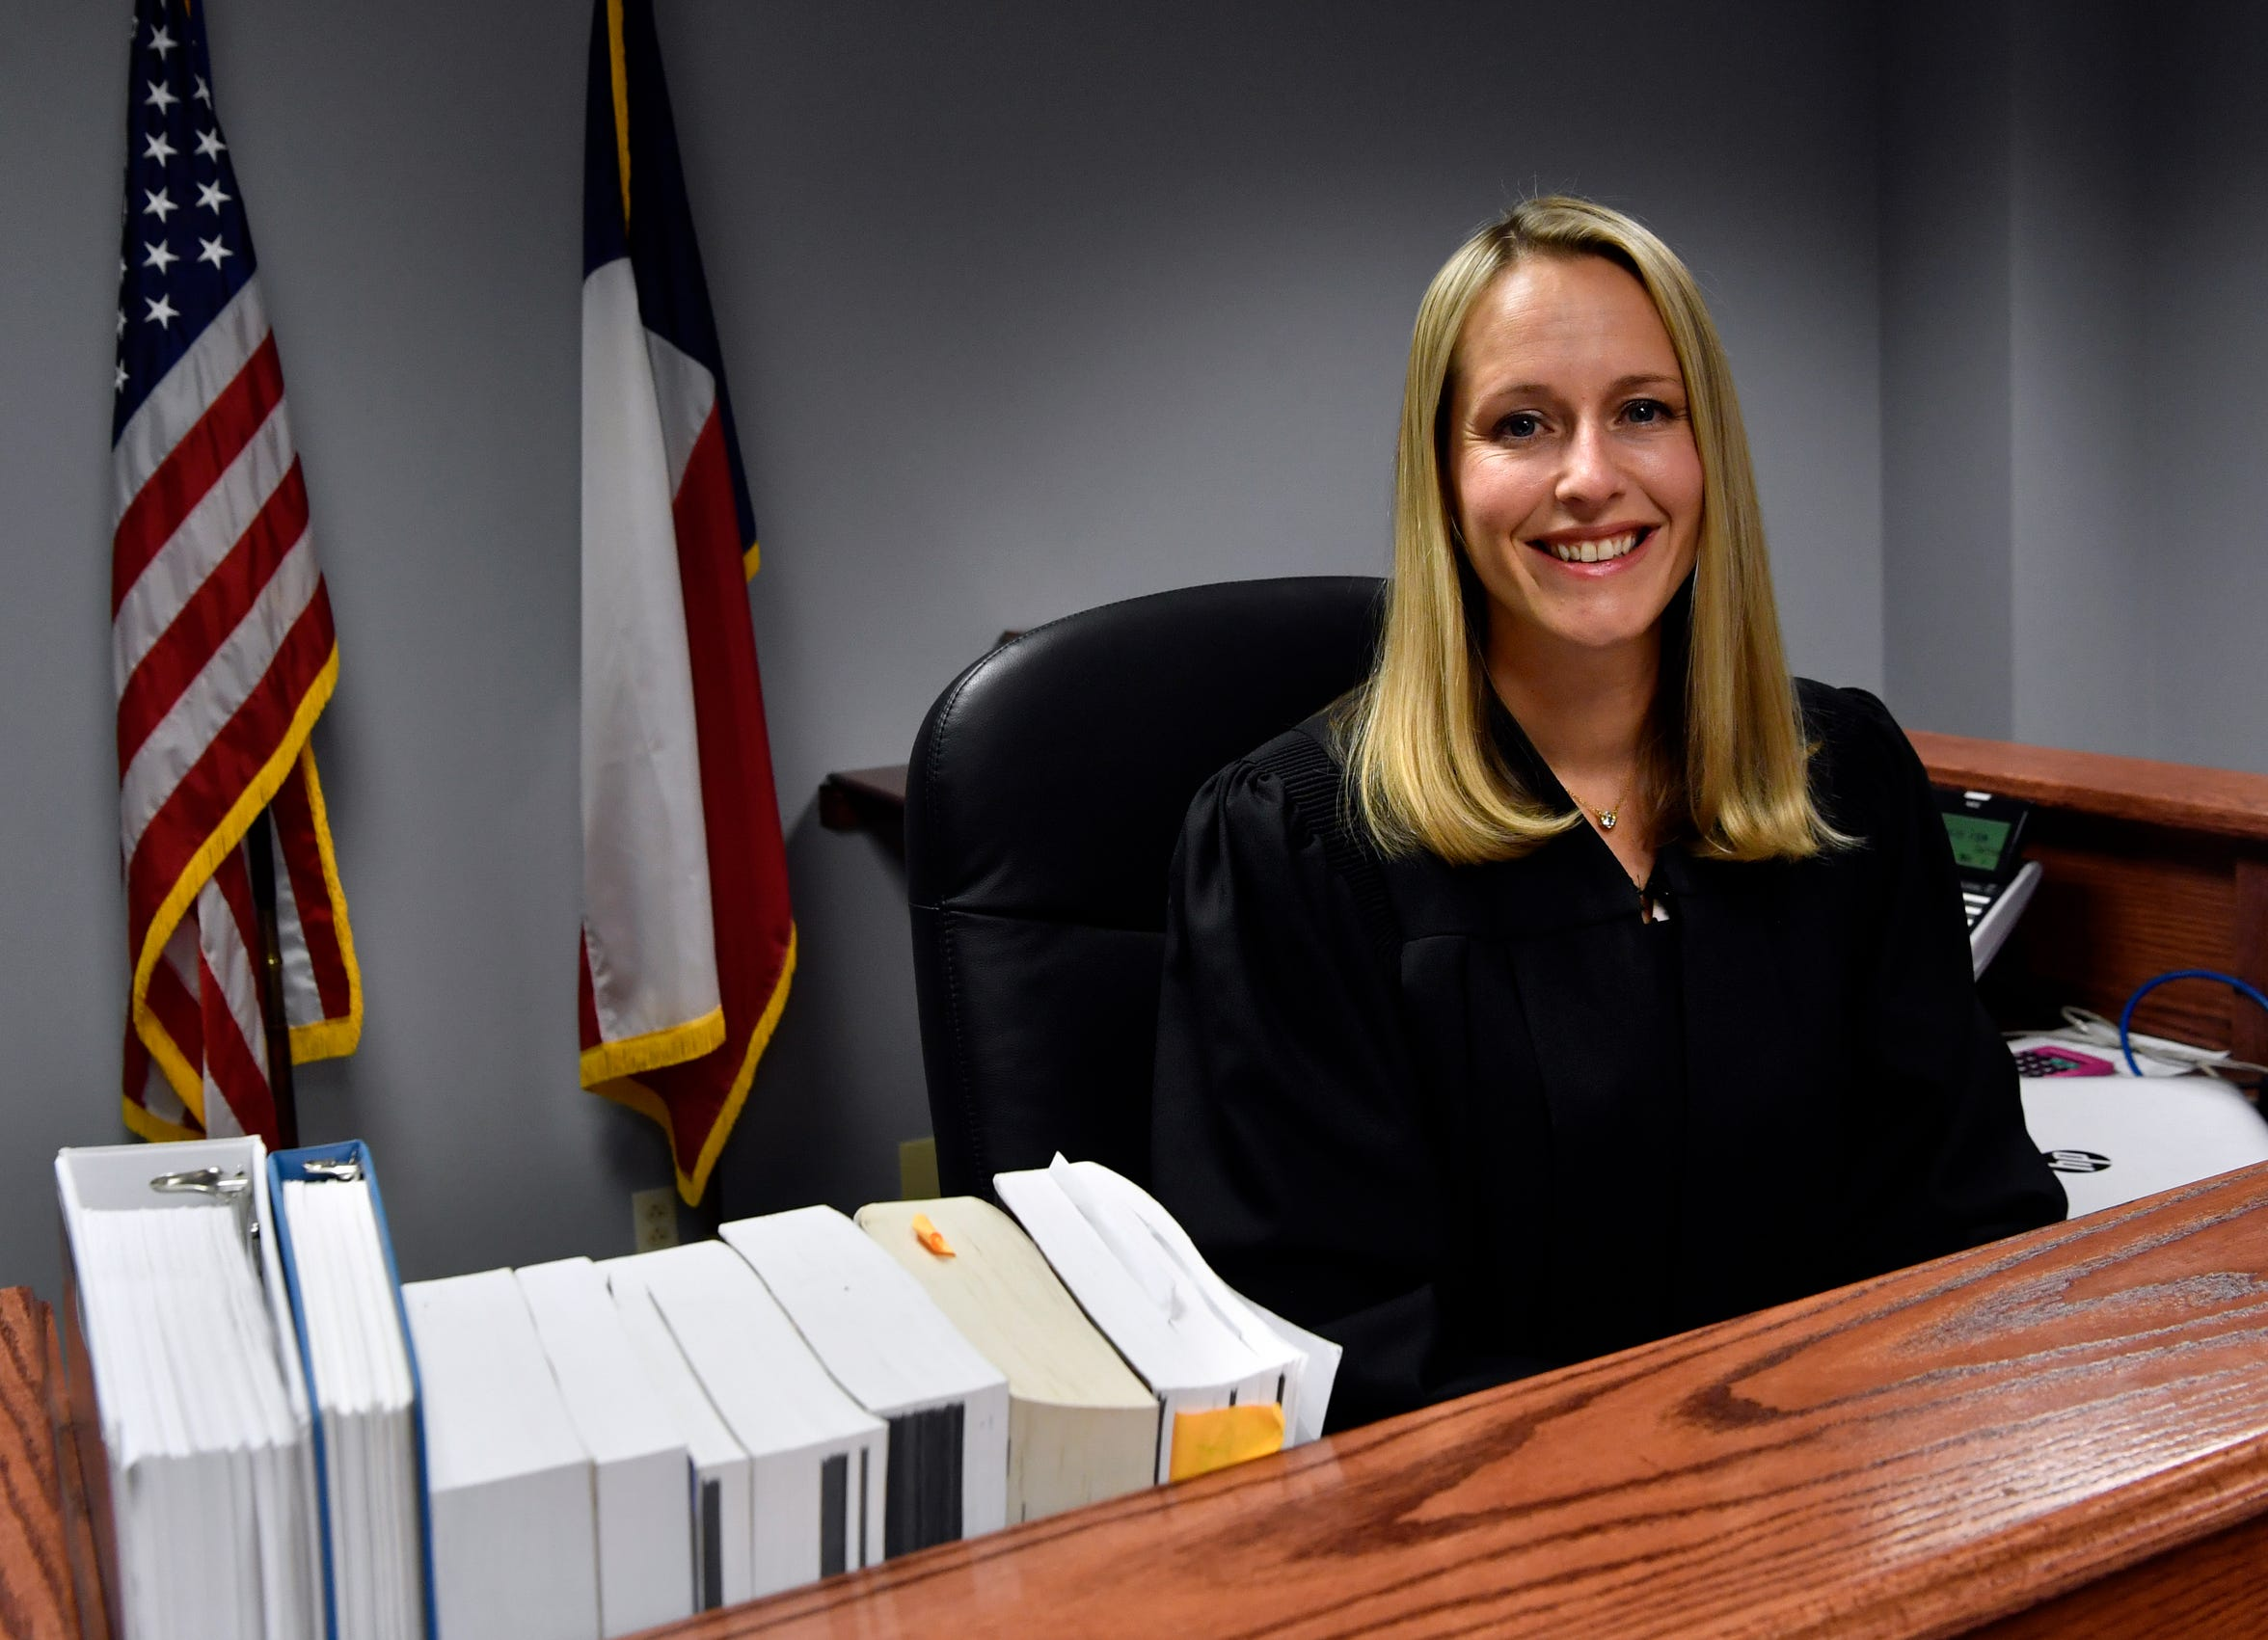 April Propst was appointed associate judge of the new Child Protective Services court at the Taylor County Courthouse.